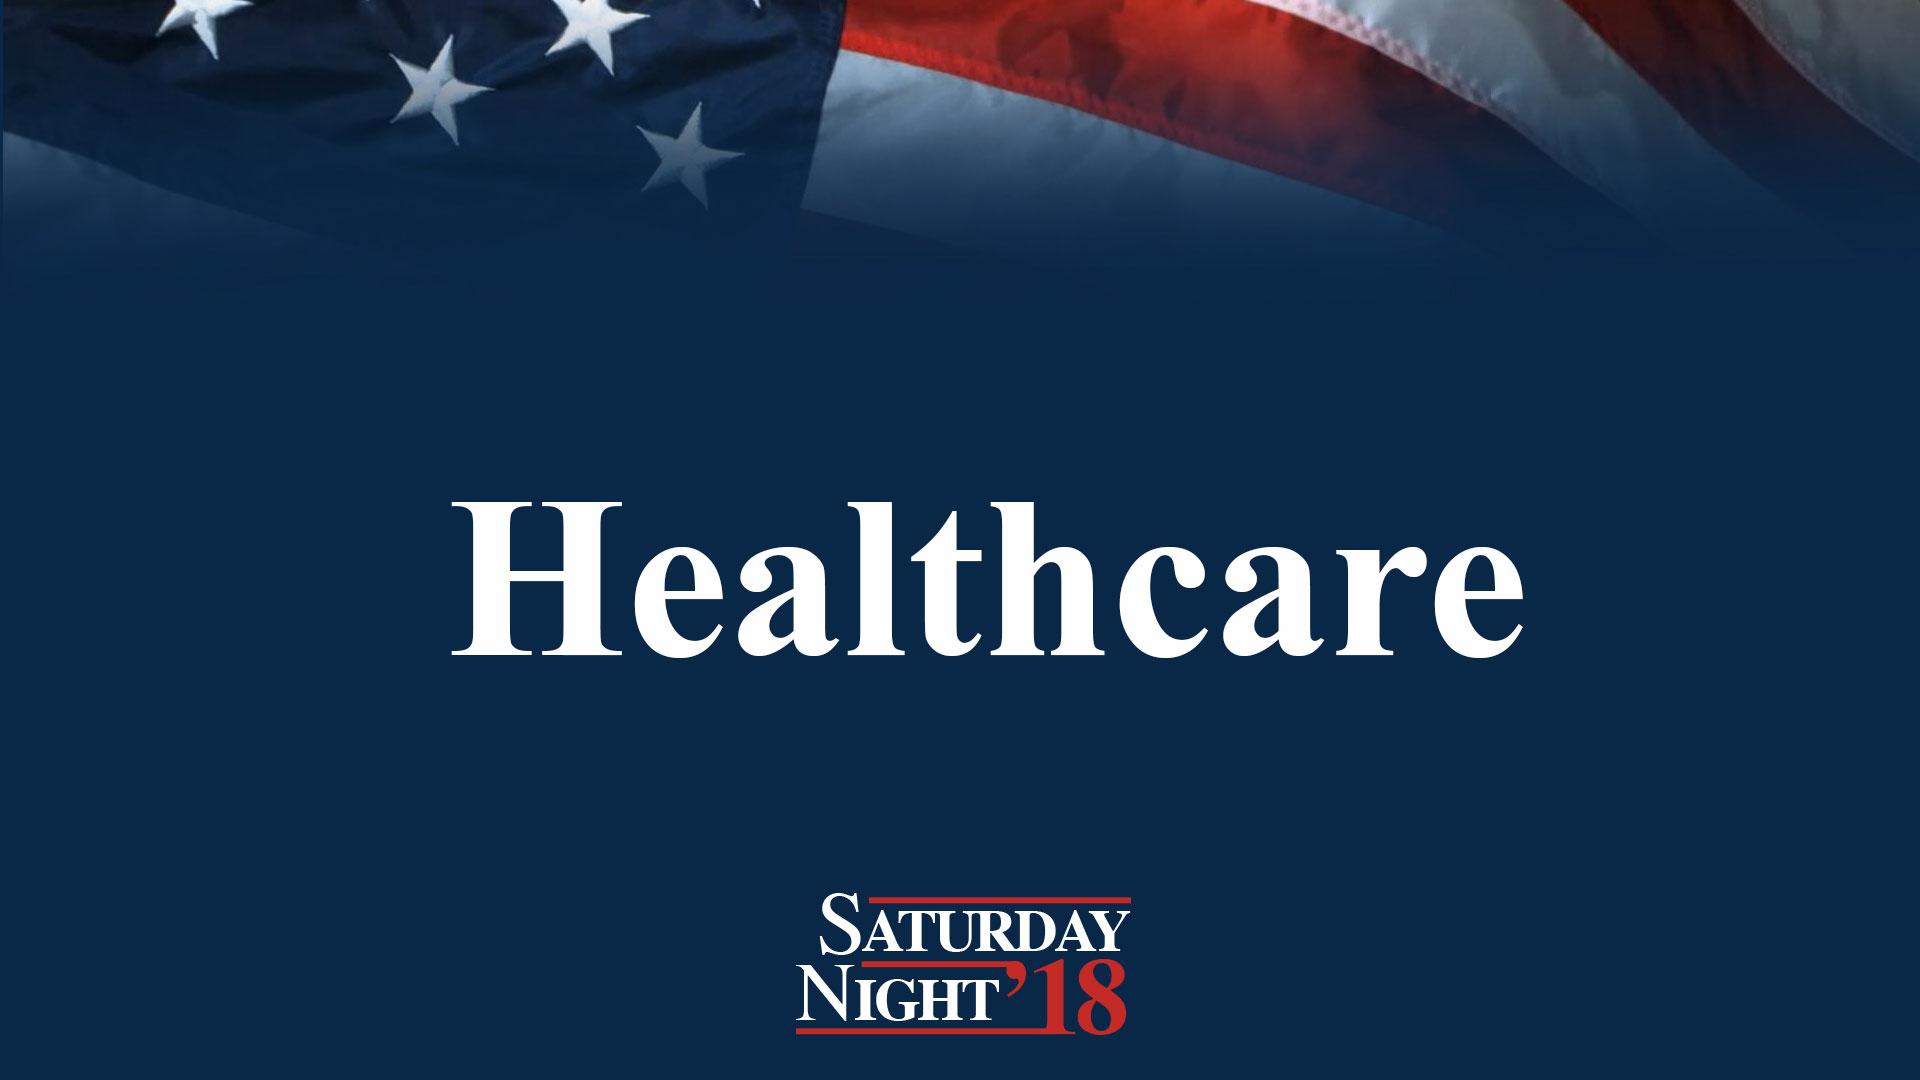 Healthcare - It's fact that the average person needs about 7-8 hours of sleep each night. Attending church on Saturday nights allows you to sleep in on Sundays, which is good for your health..and we care about that. Boom, healthcare.